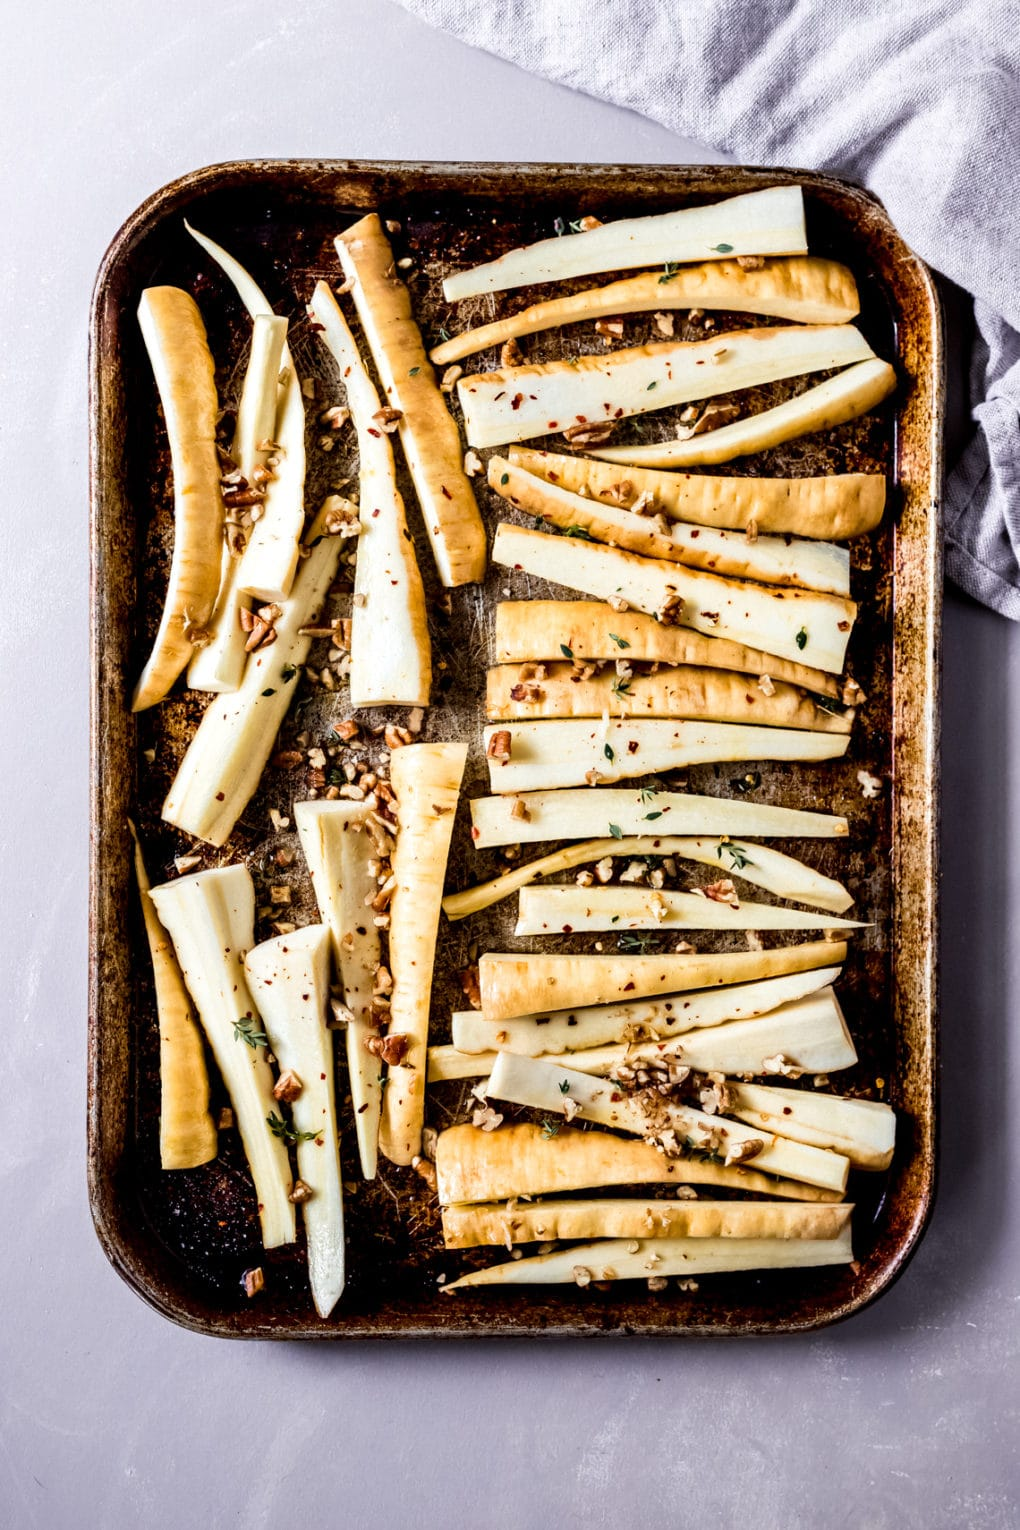 uncooked cut parsnips on a baking sheet ready to roast